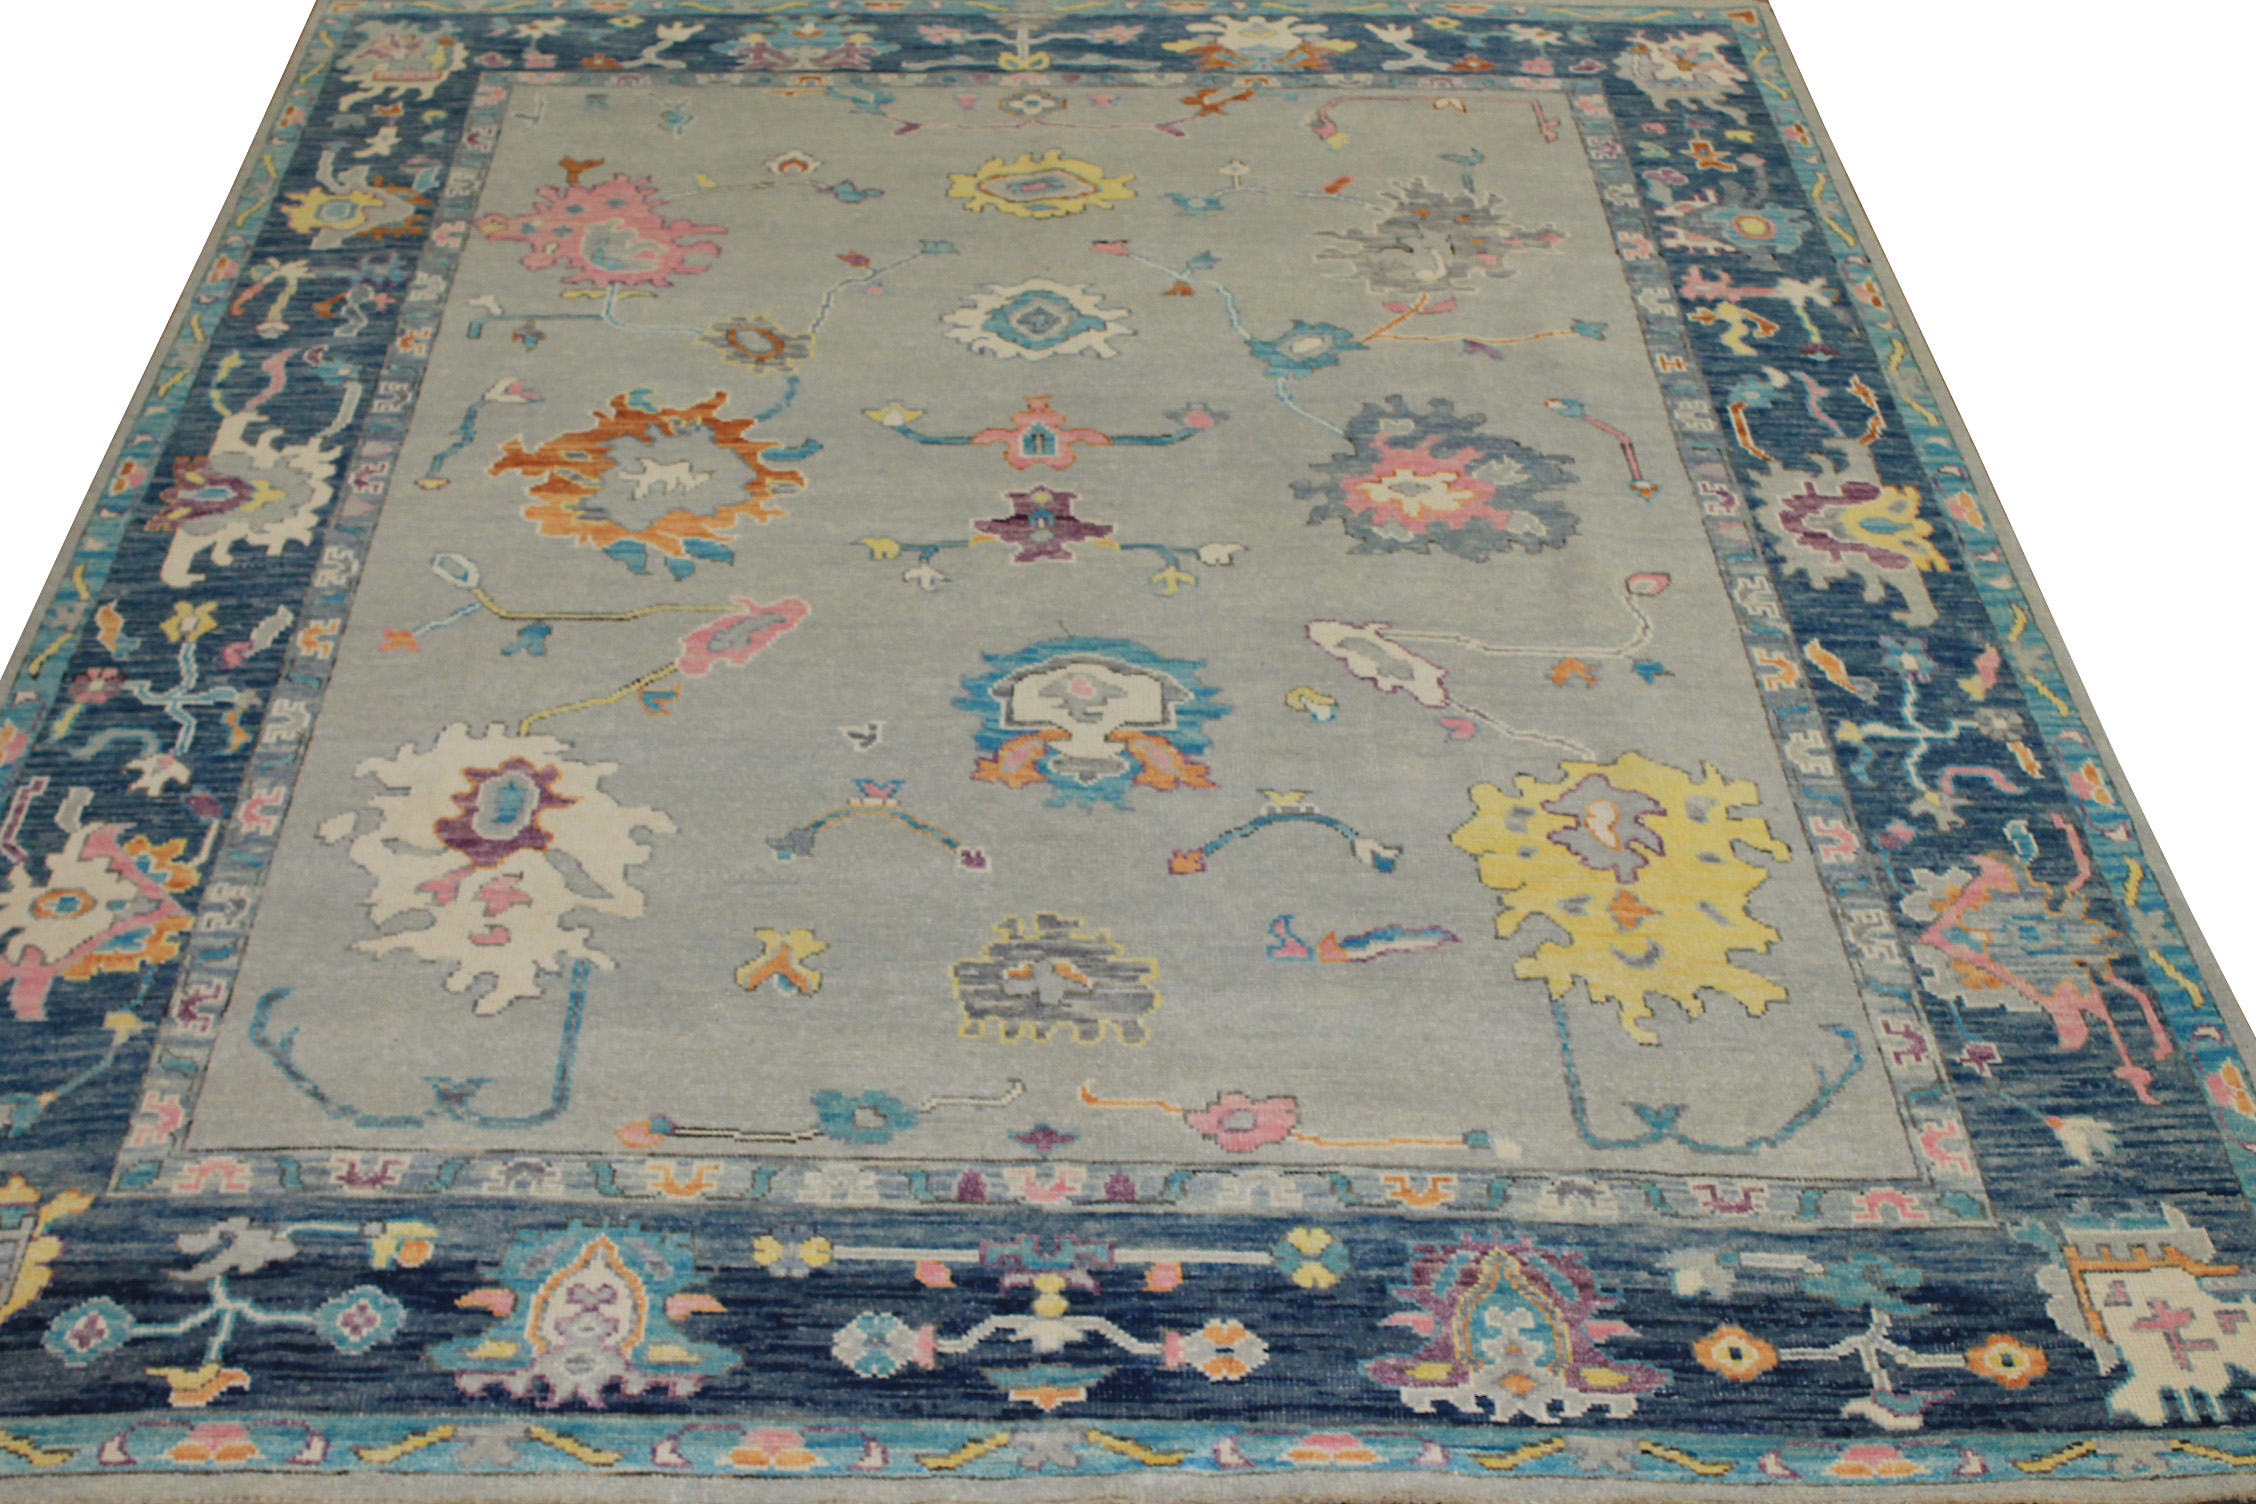 8x10 Oushak Hand Knotted Wool Area Rug - MR024410